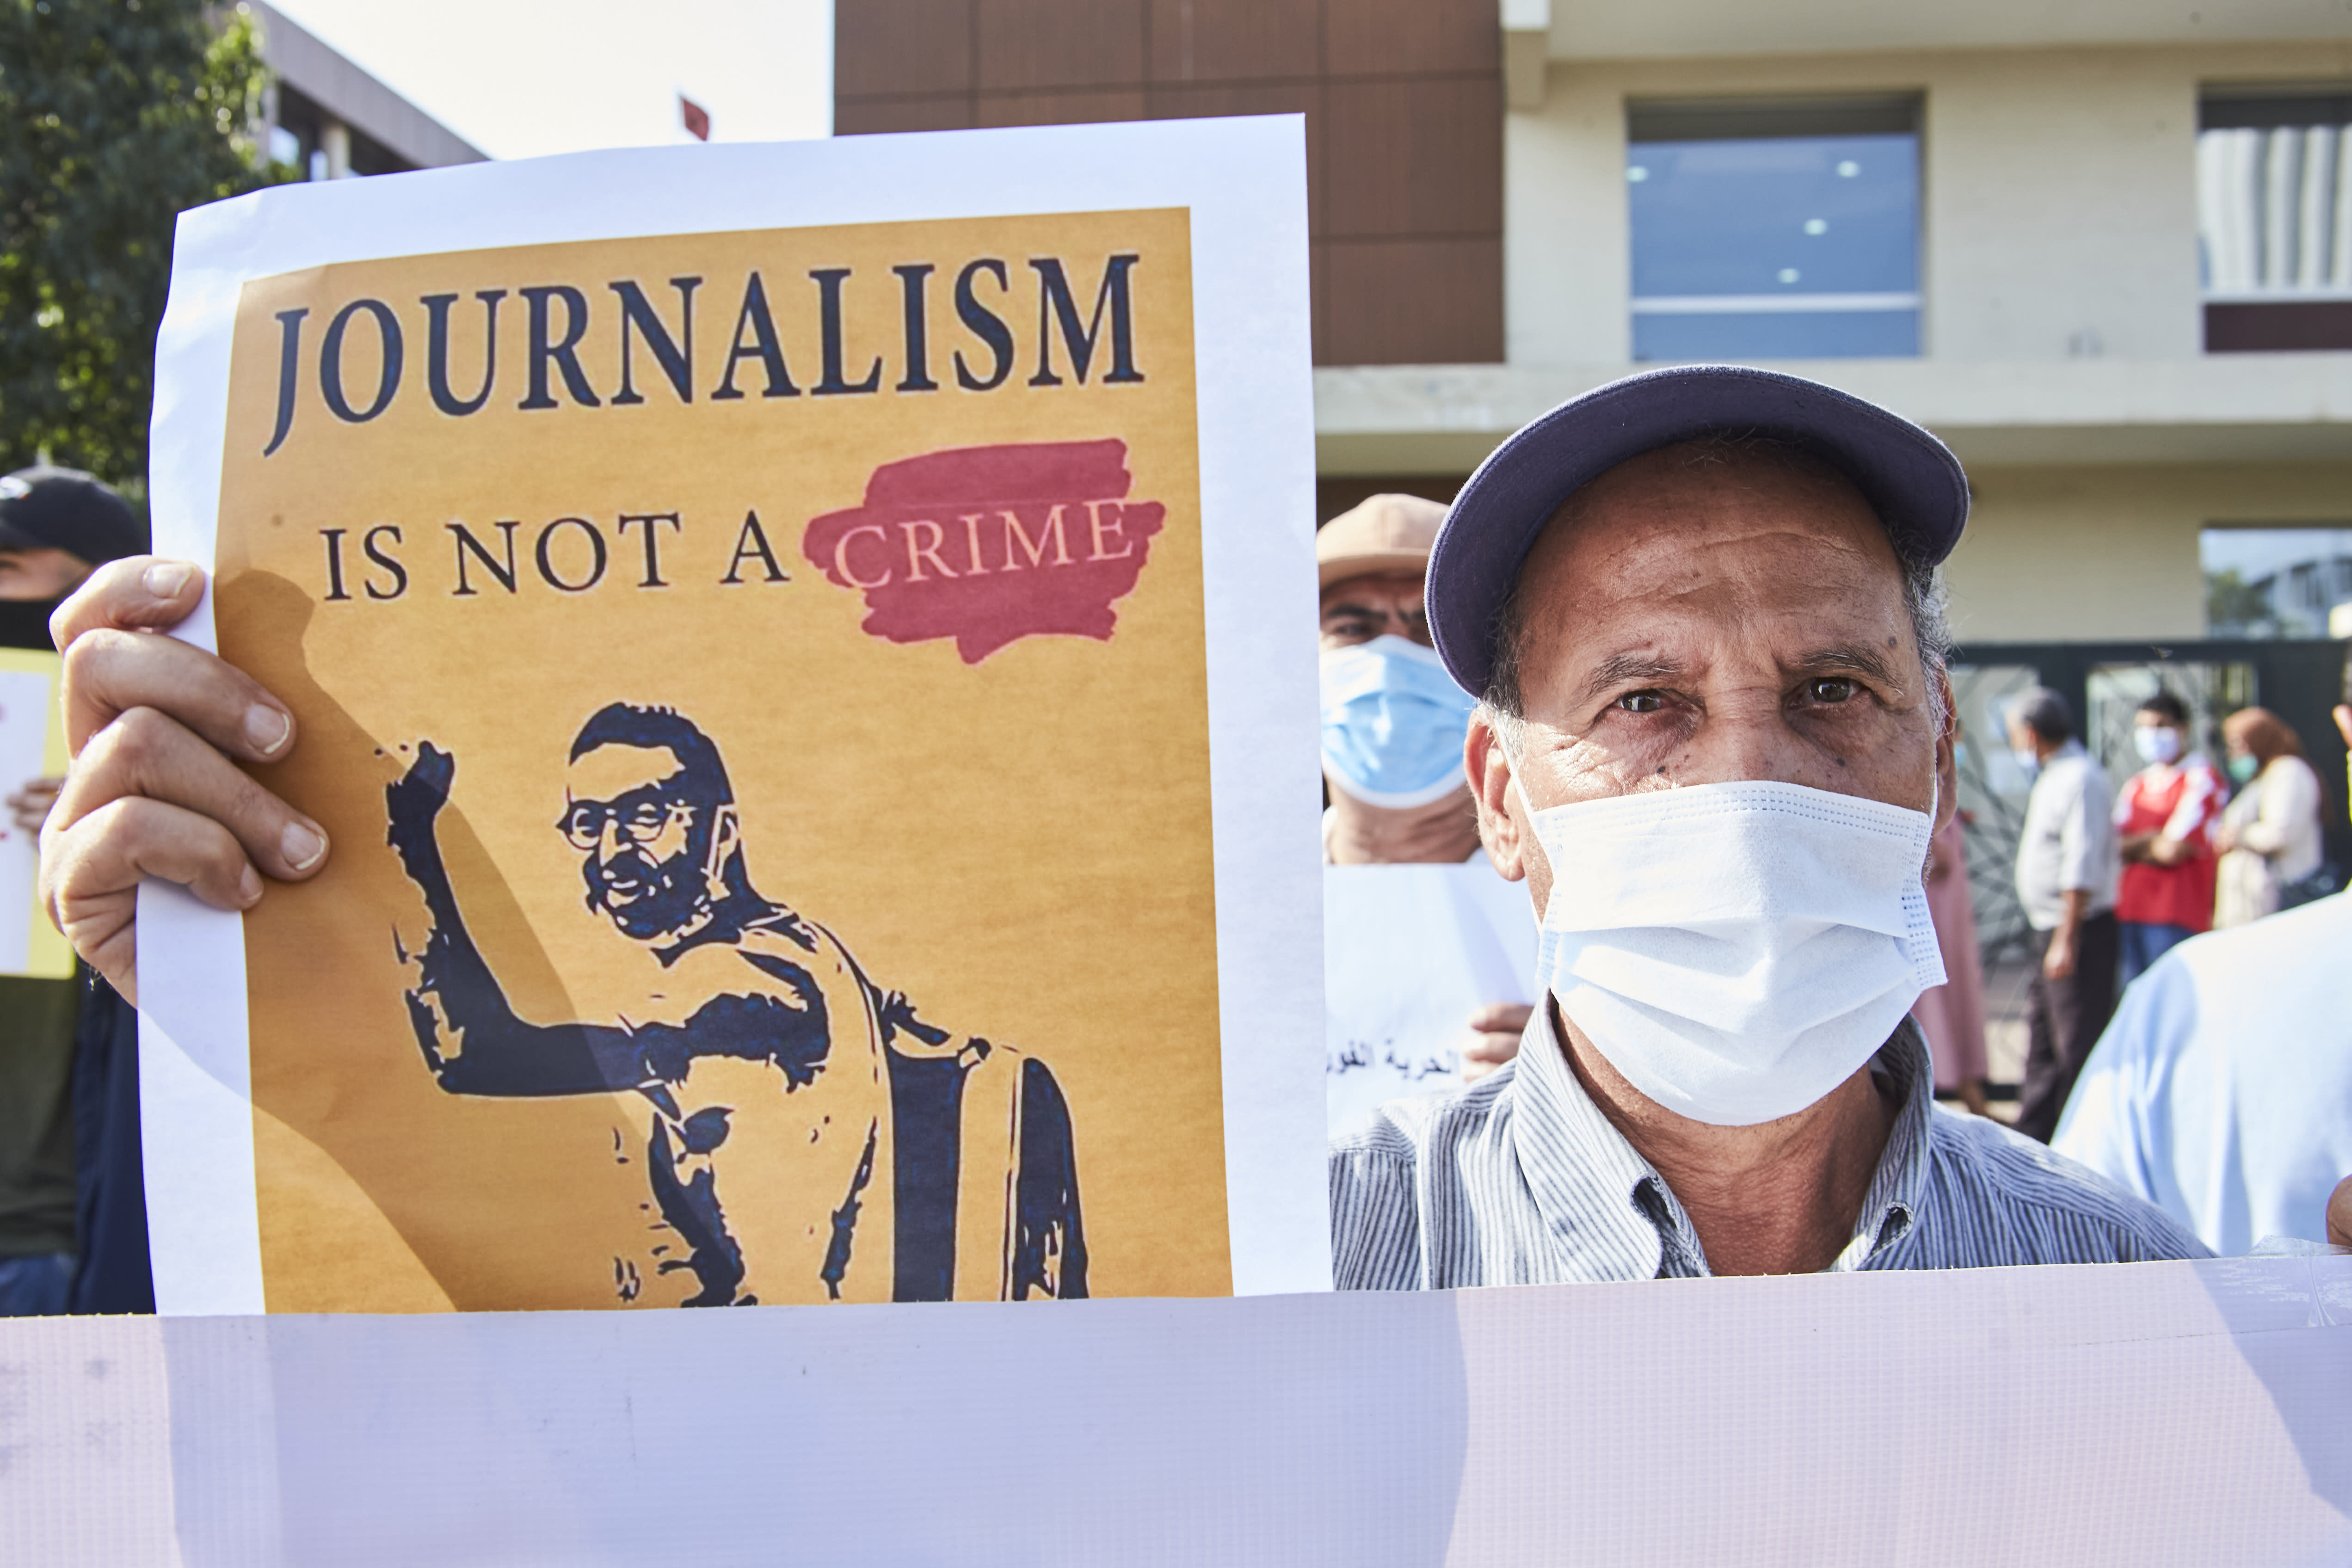 A supporters holds up a banner as he protests with others in front of the Casablanca Courthouse, in Casablanca, Morocco, Tuesday, Sept. 22, 2020, on the first day of the hearing of journalist and activist Omar Radi. The arrest of journalist Omar Radi follows numerous summons following a police investigation into suspicion of receiving funds linked to foreign intelligence. The investigation came after rights group Amnesty International accused Morocco of using Israeli-made spyware to snoop on its phone. (AP Photo/Abdeljalil Bounhar)